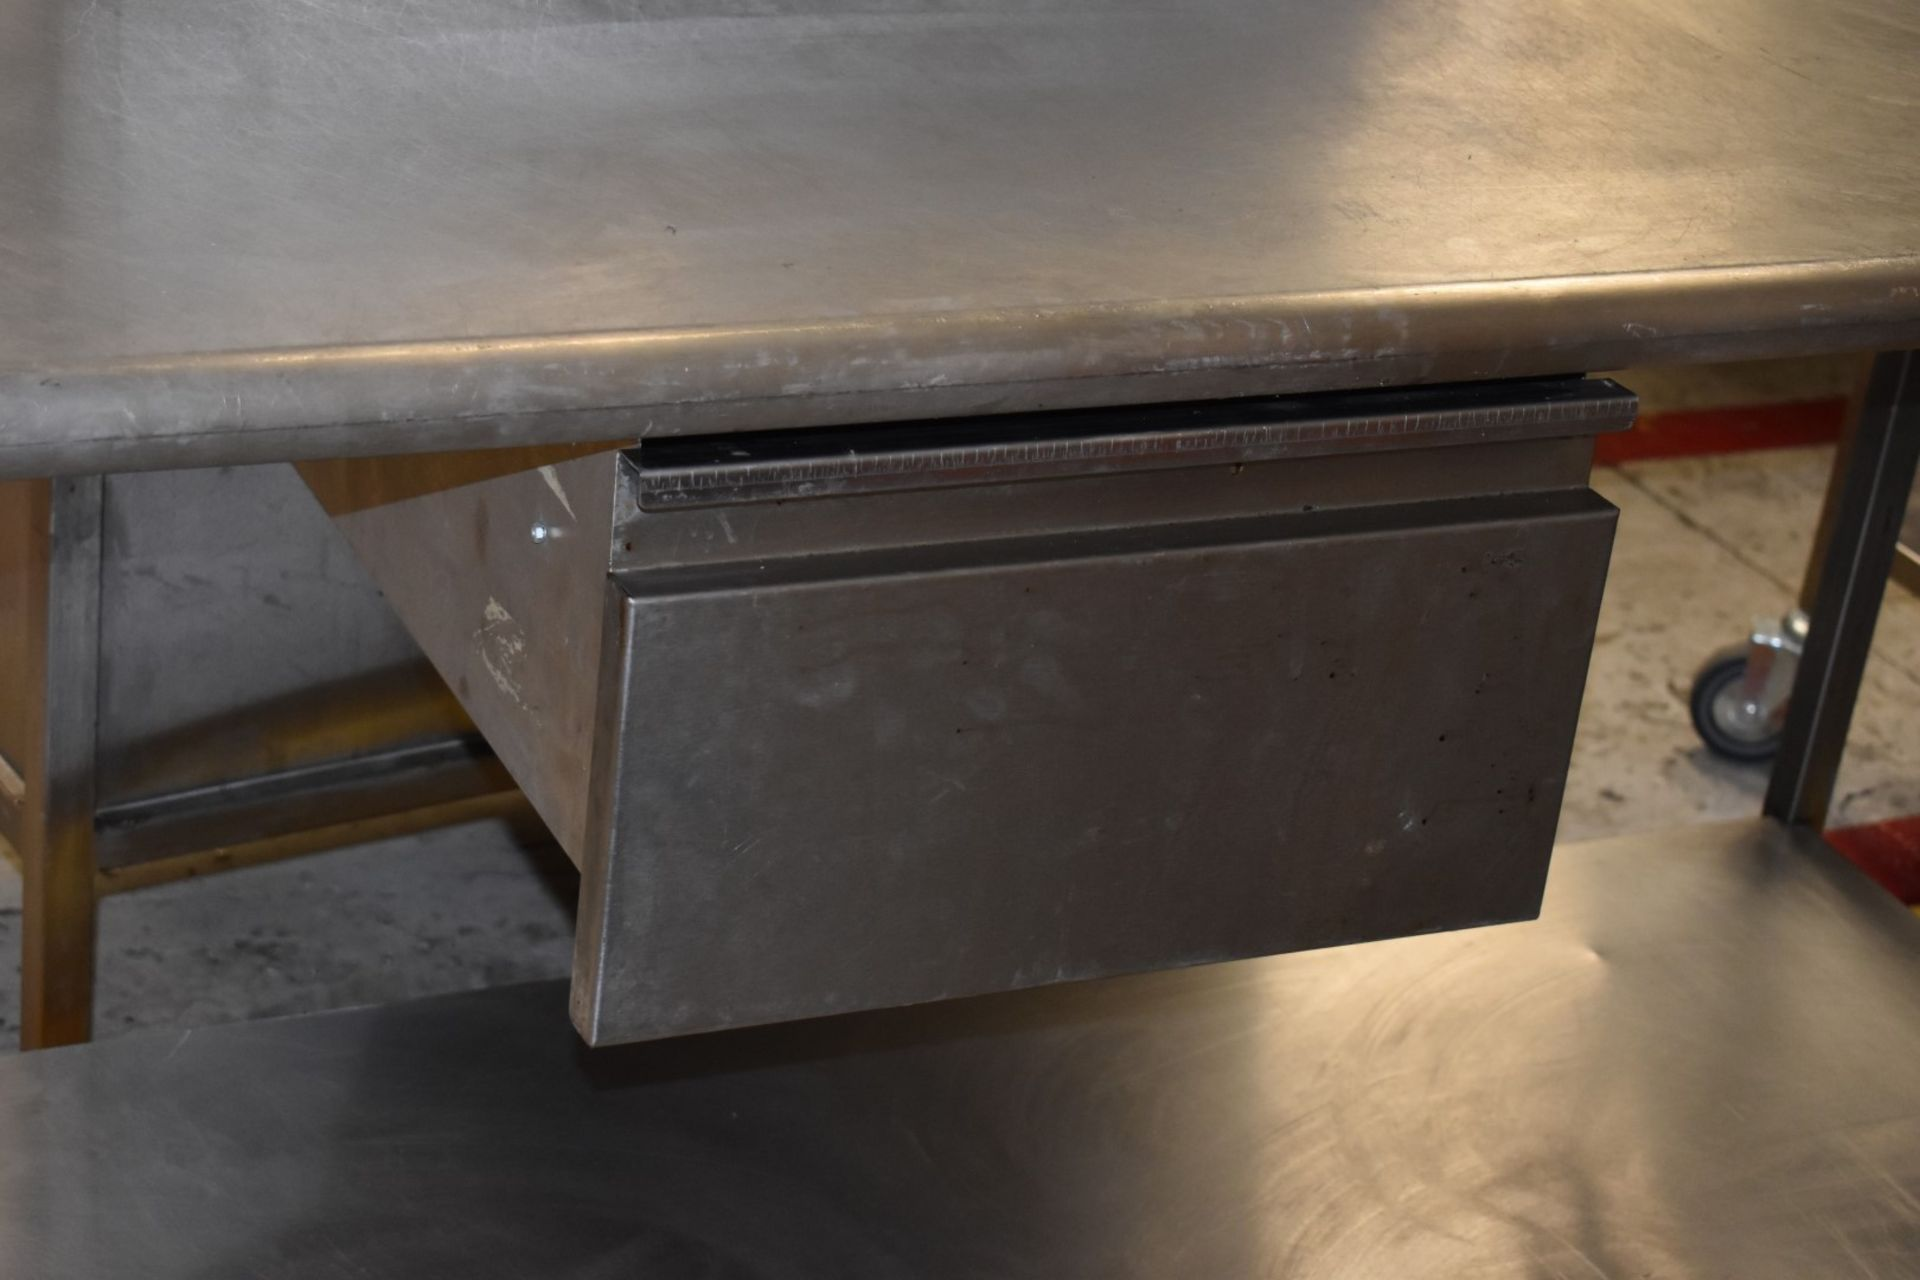 1 x Stainless Steel Prep Bench With Drawer and Undershelf - H87 x W170 x D65 cms - CL626 - Ref MS304 - Image 6 of 6